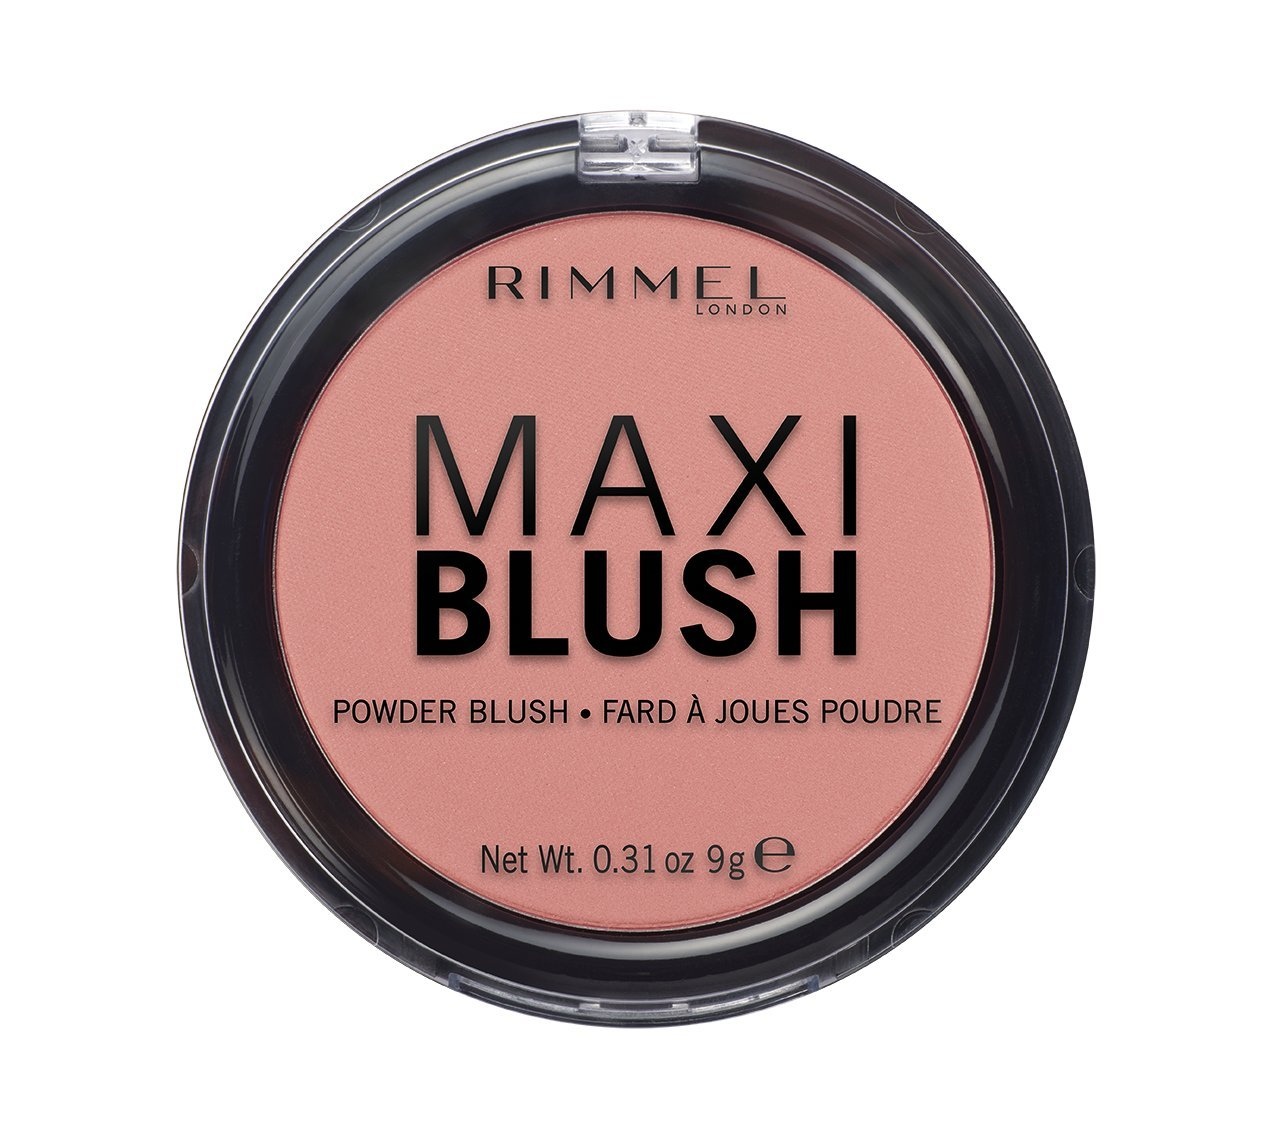 Rimmel London Maxi Blusher, Exposed 9 g 34222299006